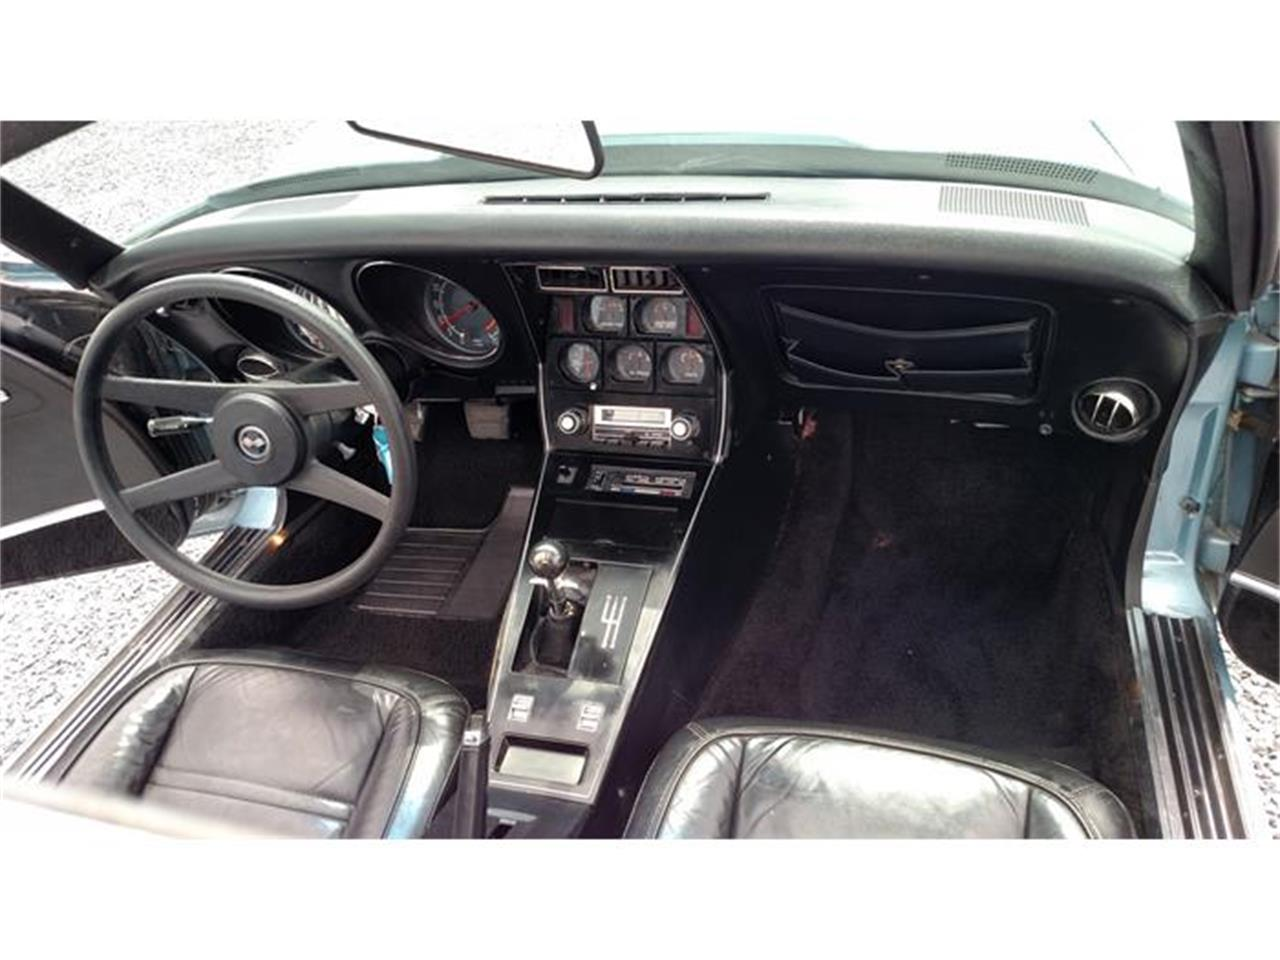 Large Picture of '77 Chevrolet Corvette located in Martinsburg Pennsylvania - $17,999.00 - IRRE